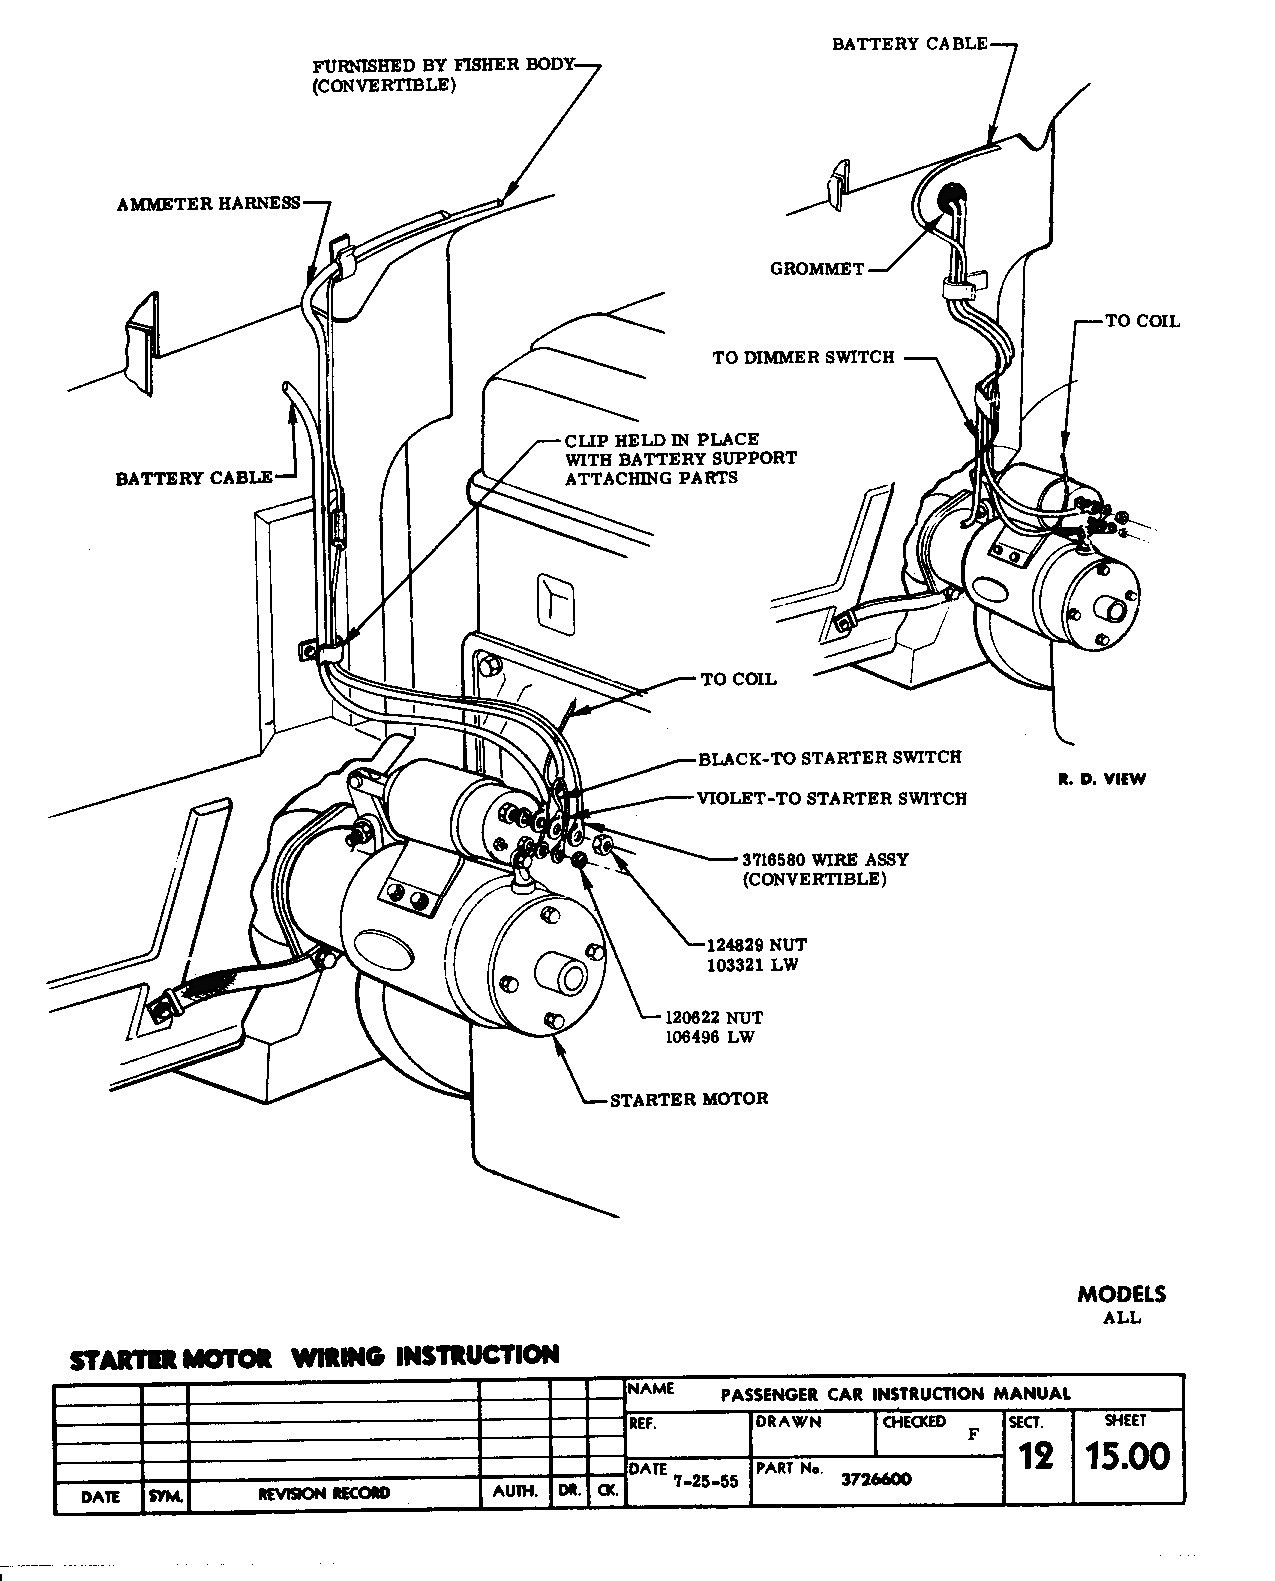 mazda 323 wiring diagram bedford tj 2001 tribute engine library